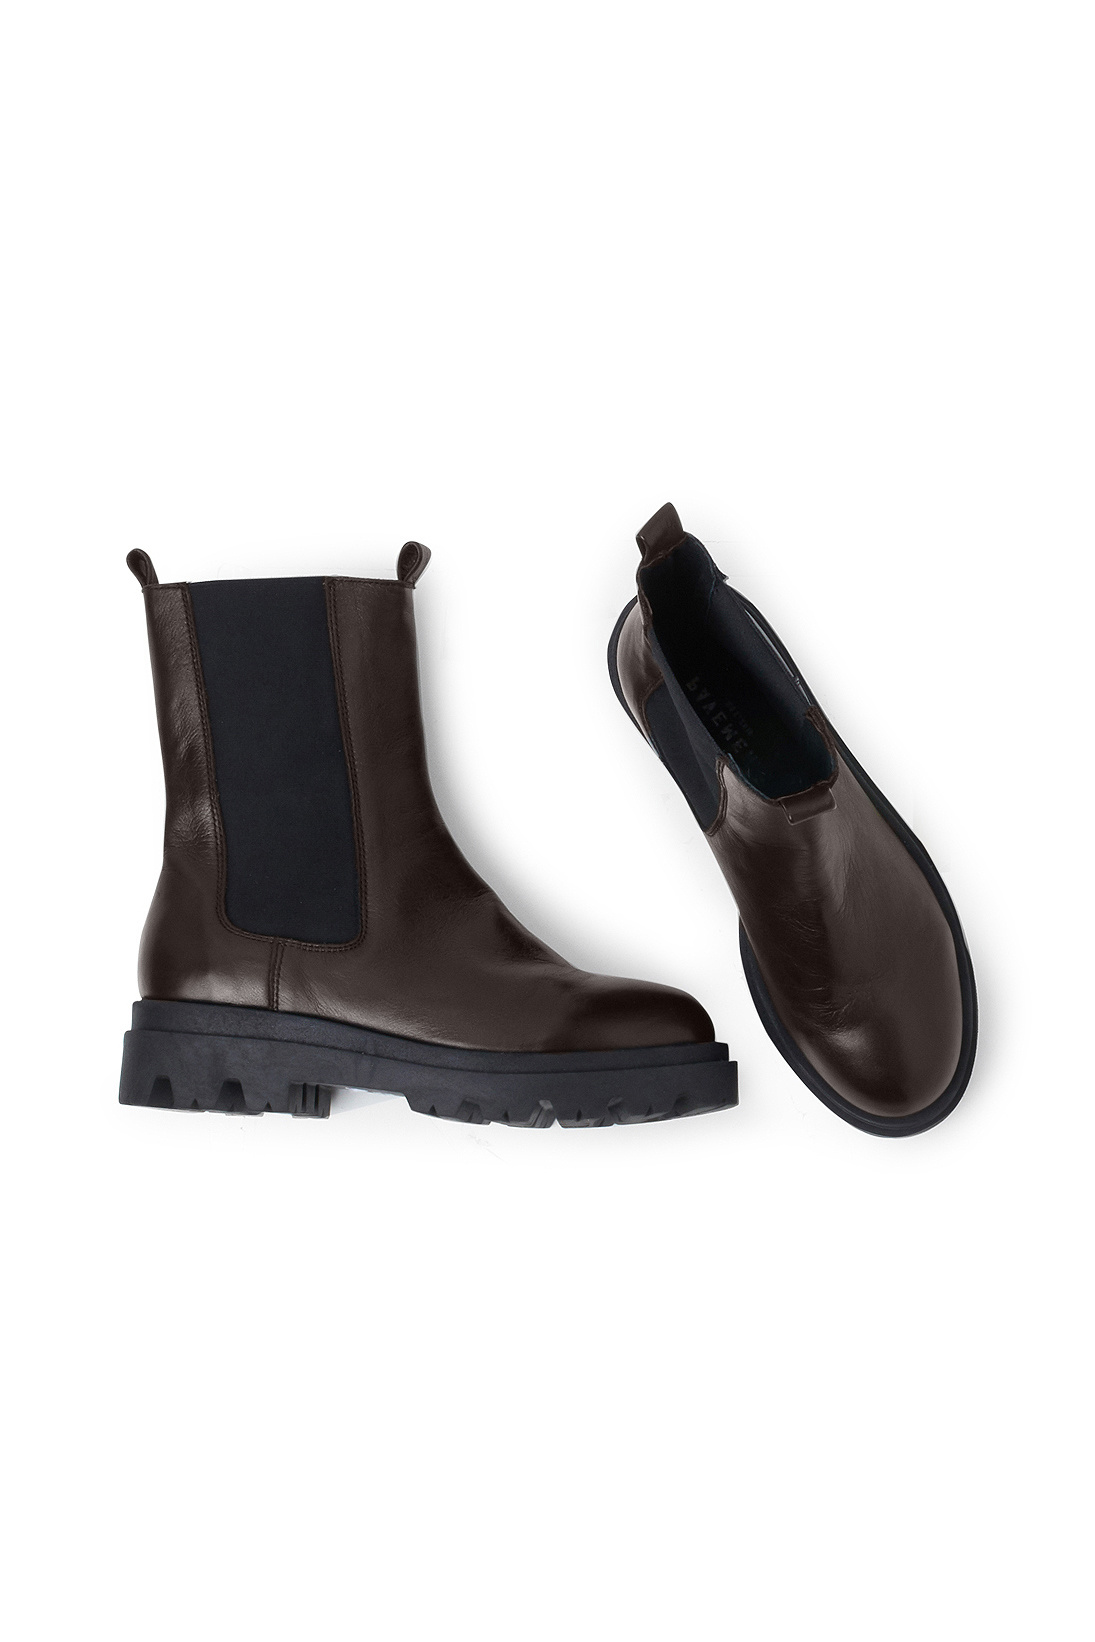 Sia Boot - Brown-2